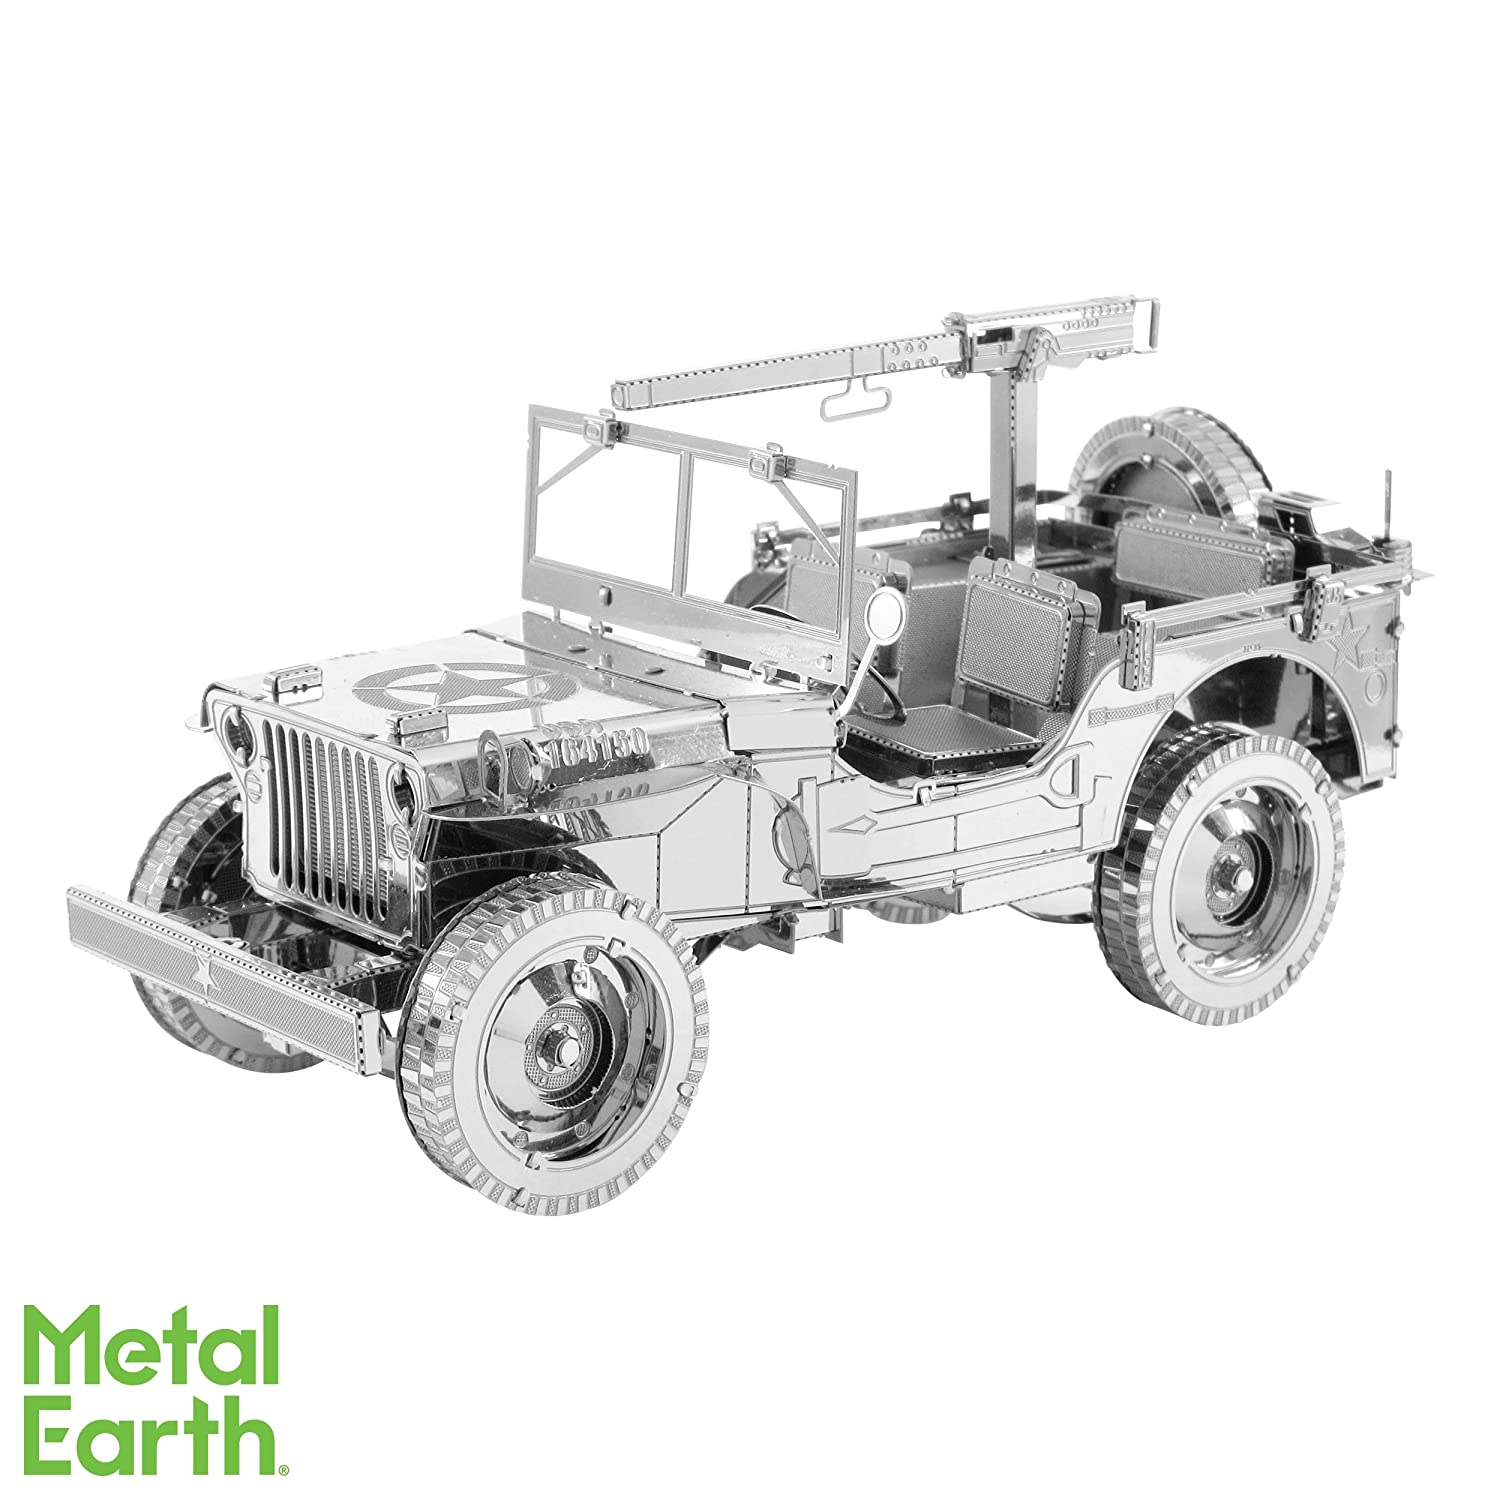 Fascinations Iconx Willys Mb Jeep 3d Metal Model Kit 50off Spy Jet Escape 8638